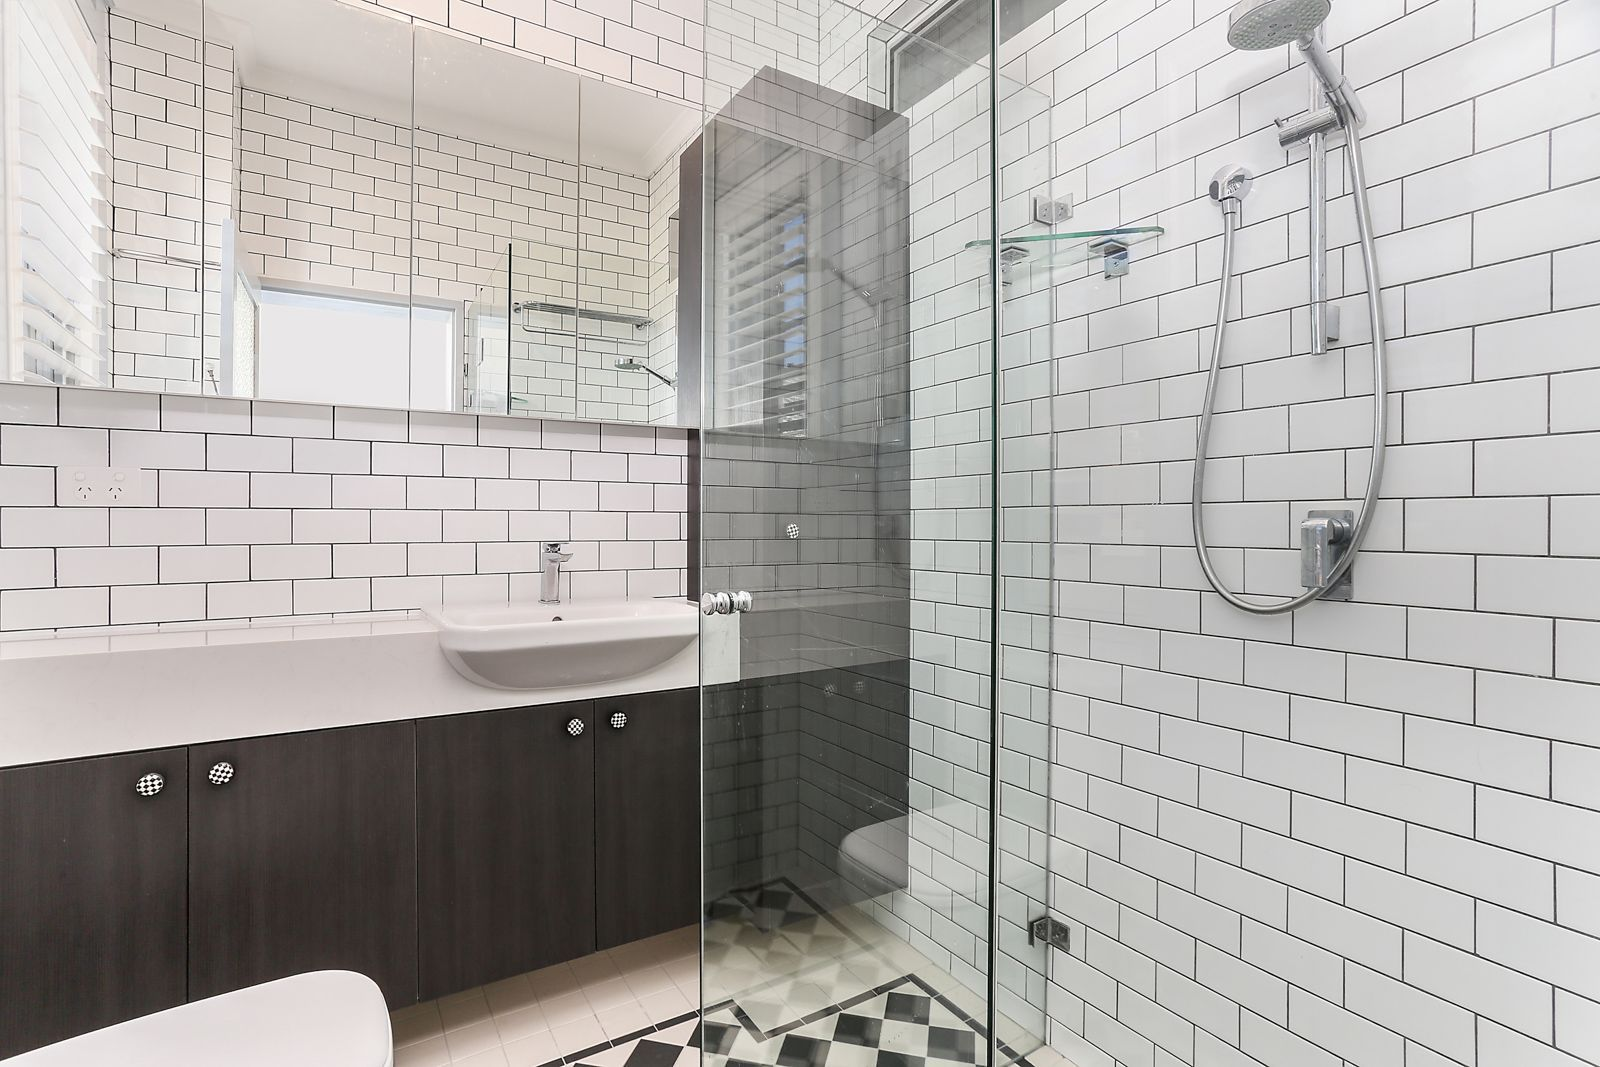 7/59 Dudley Street Coogee 2034